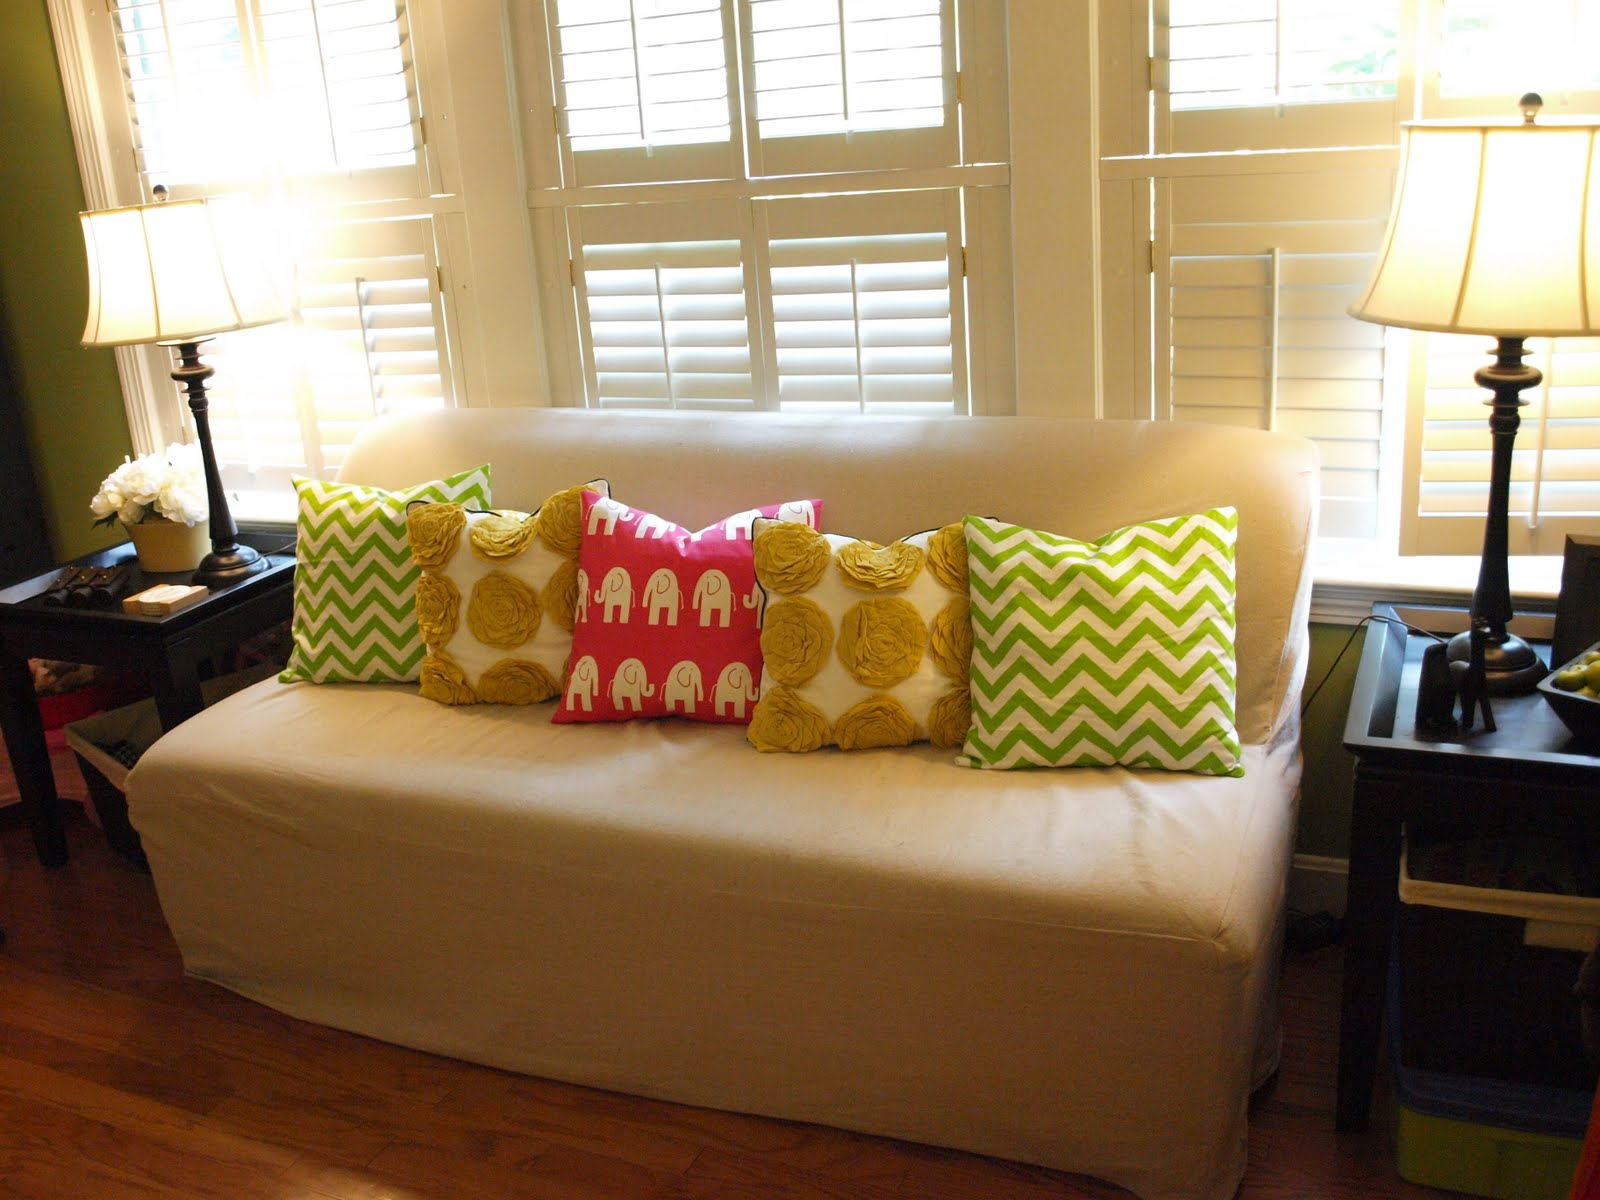 Sofa Pillows With Loveseat And Sidetable At Left And Right